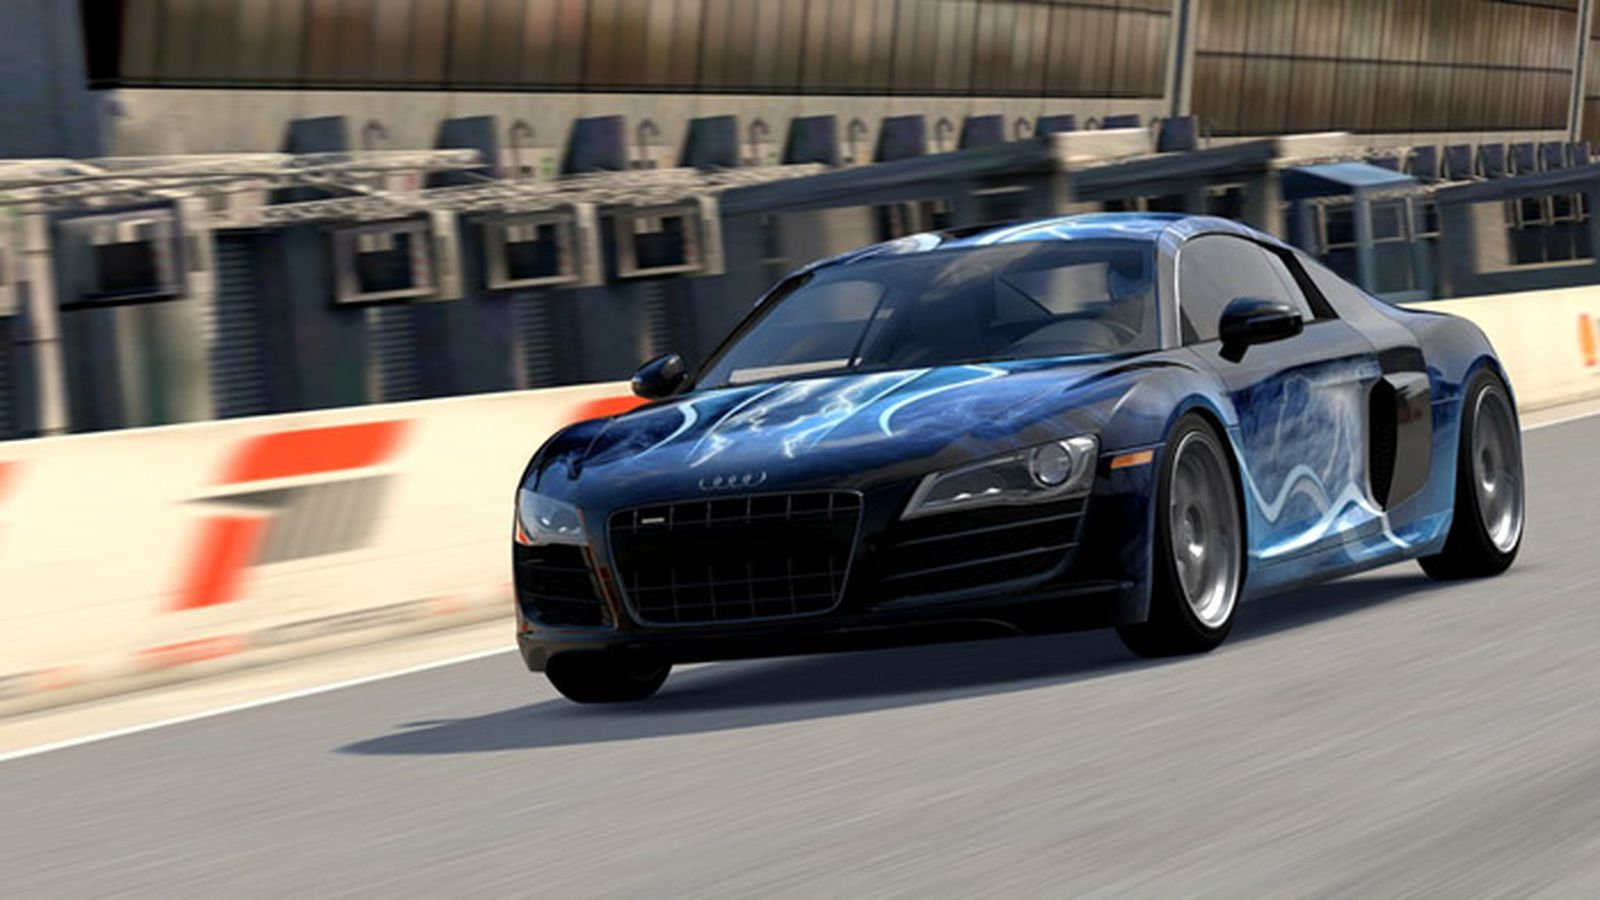 New Trans Am >> 'Forza 4' August car pack adds 10 luxury cars to players ...